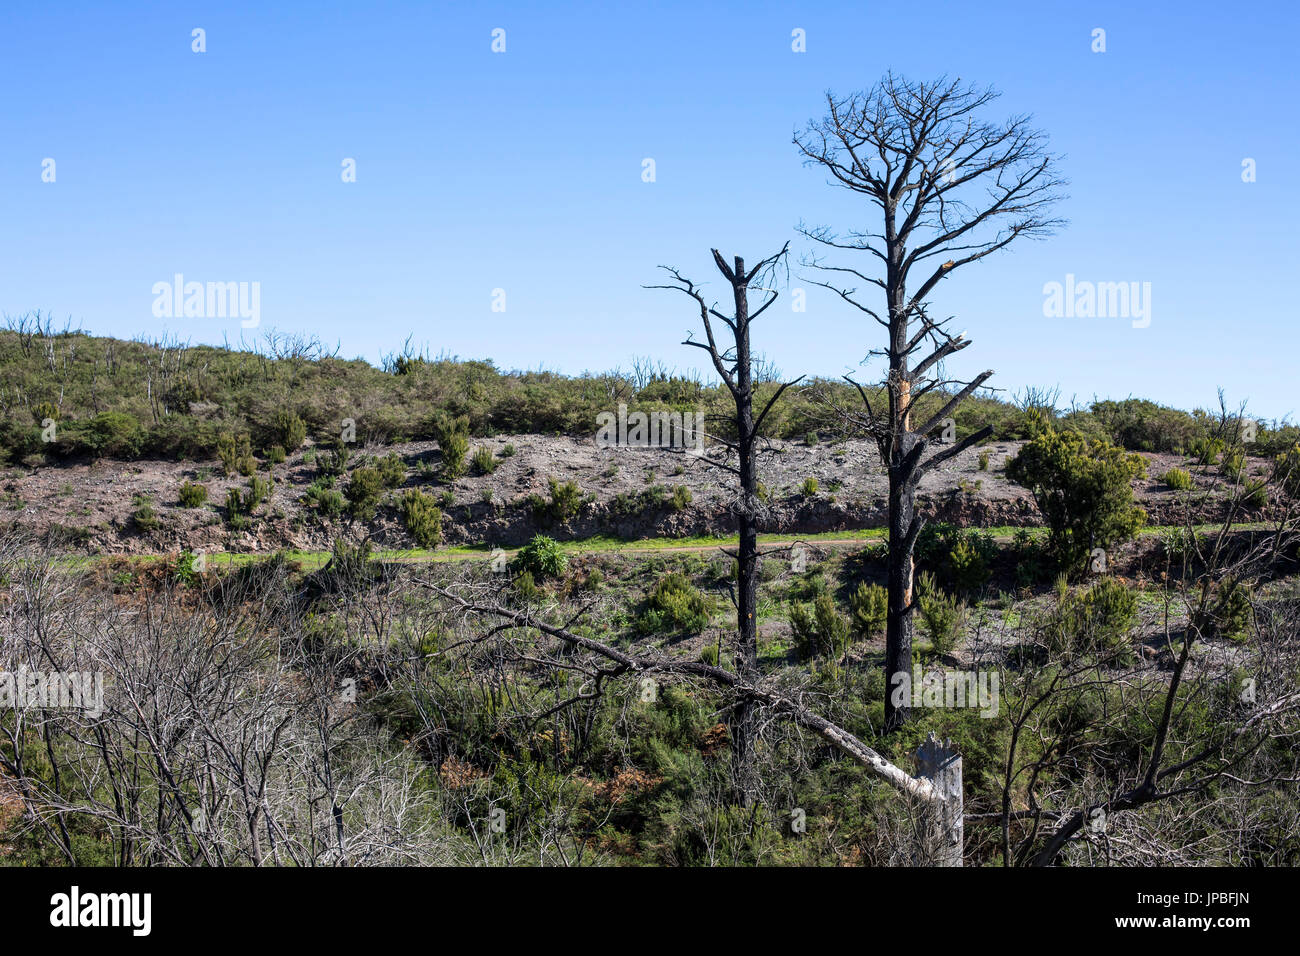 charred trees in the hiking trail 16 of the conflagration in 2012 on La Gomera, Spain - Stock Image